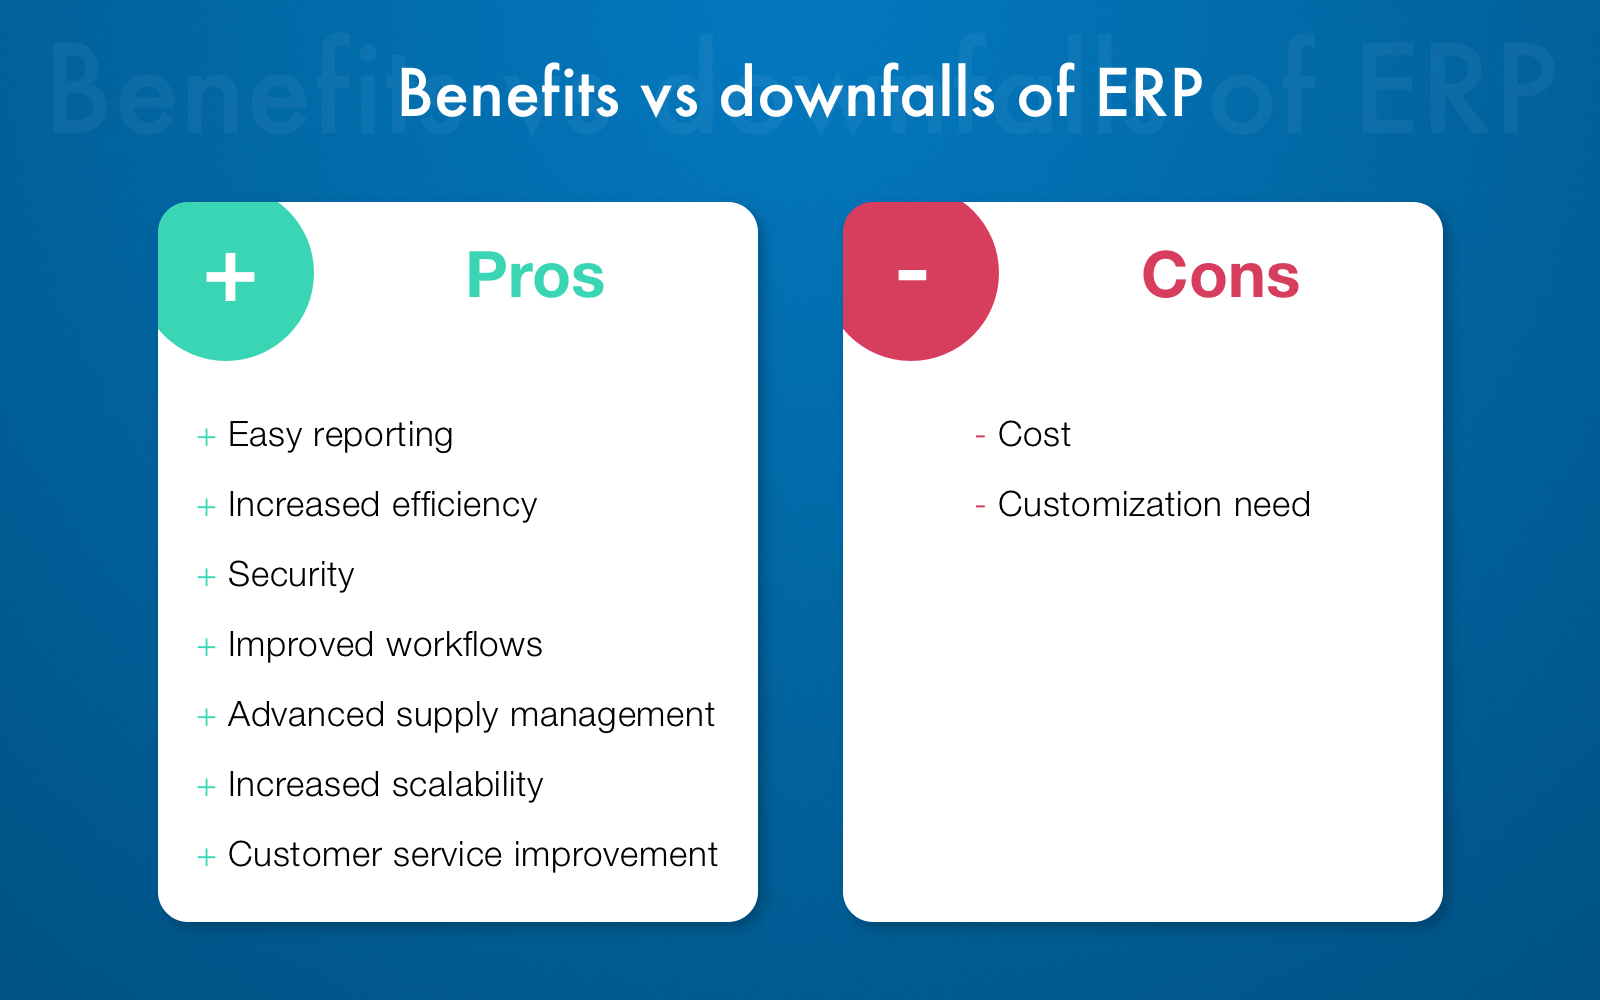 ERP system benefits and downfalls